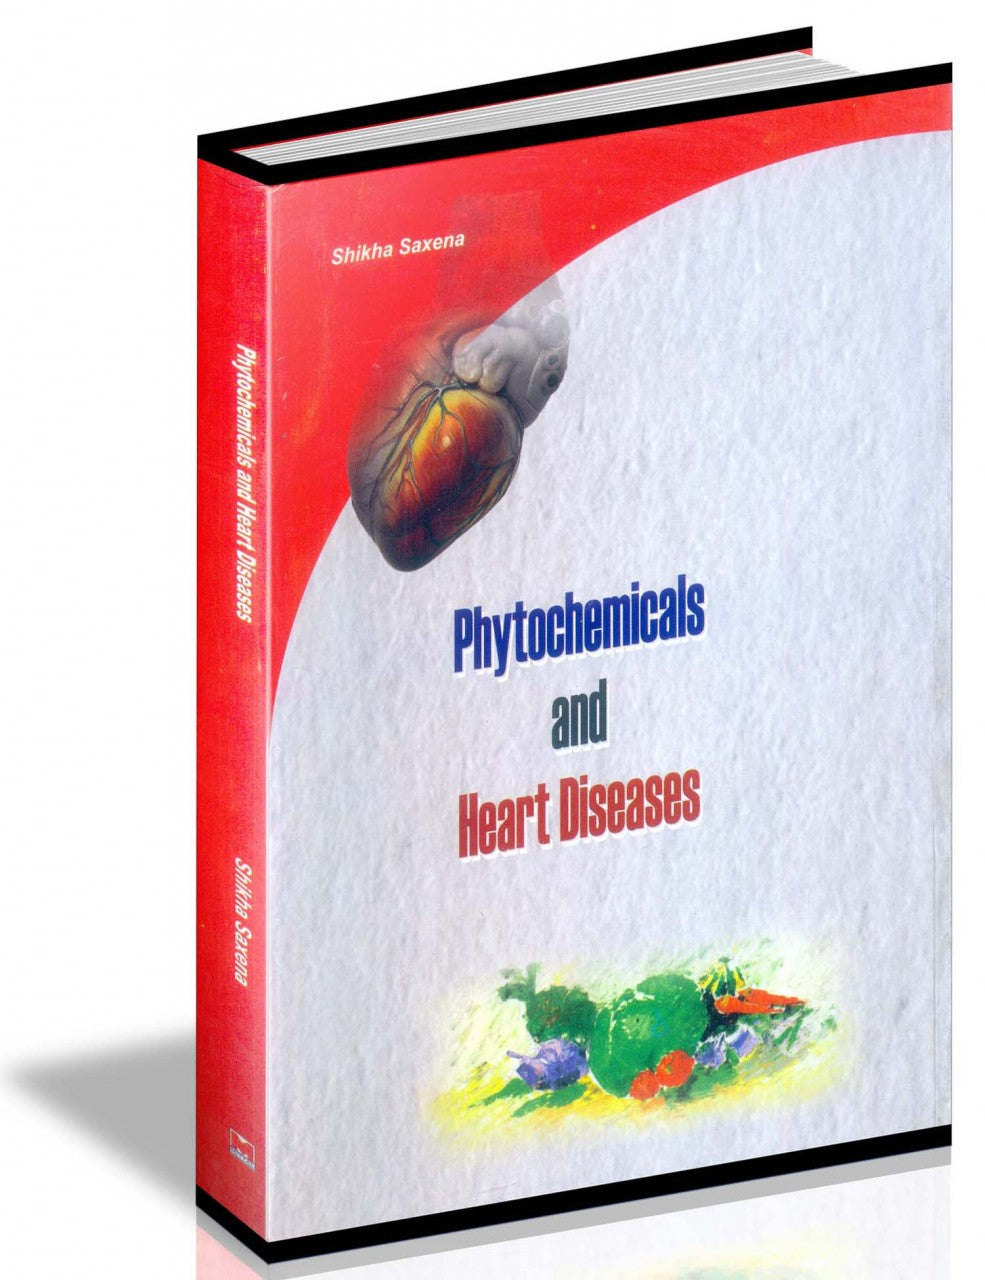 Phytochemicals and Heart Diseases